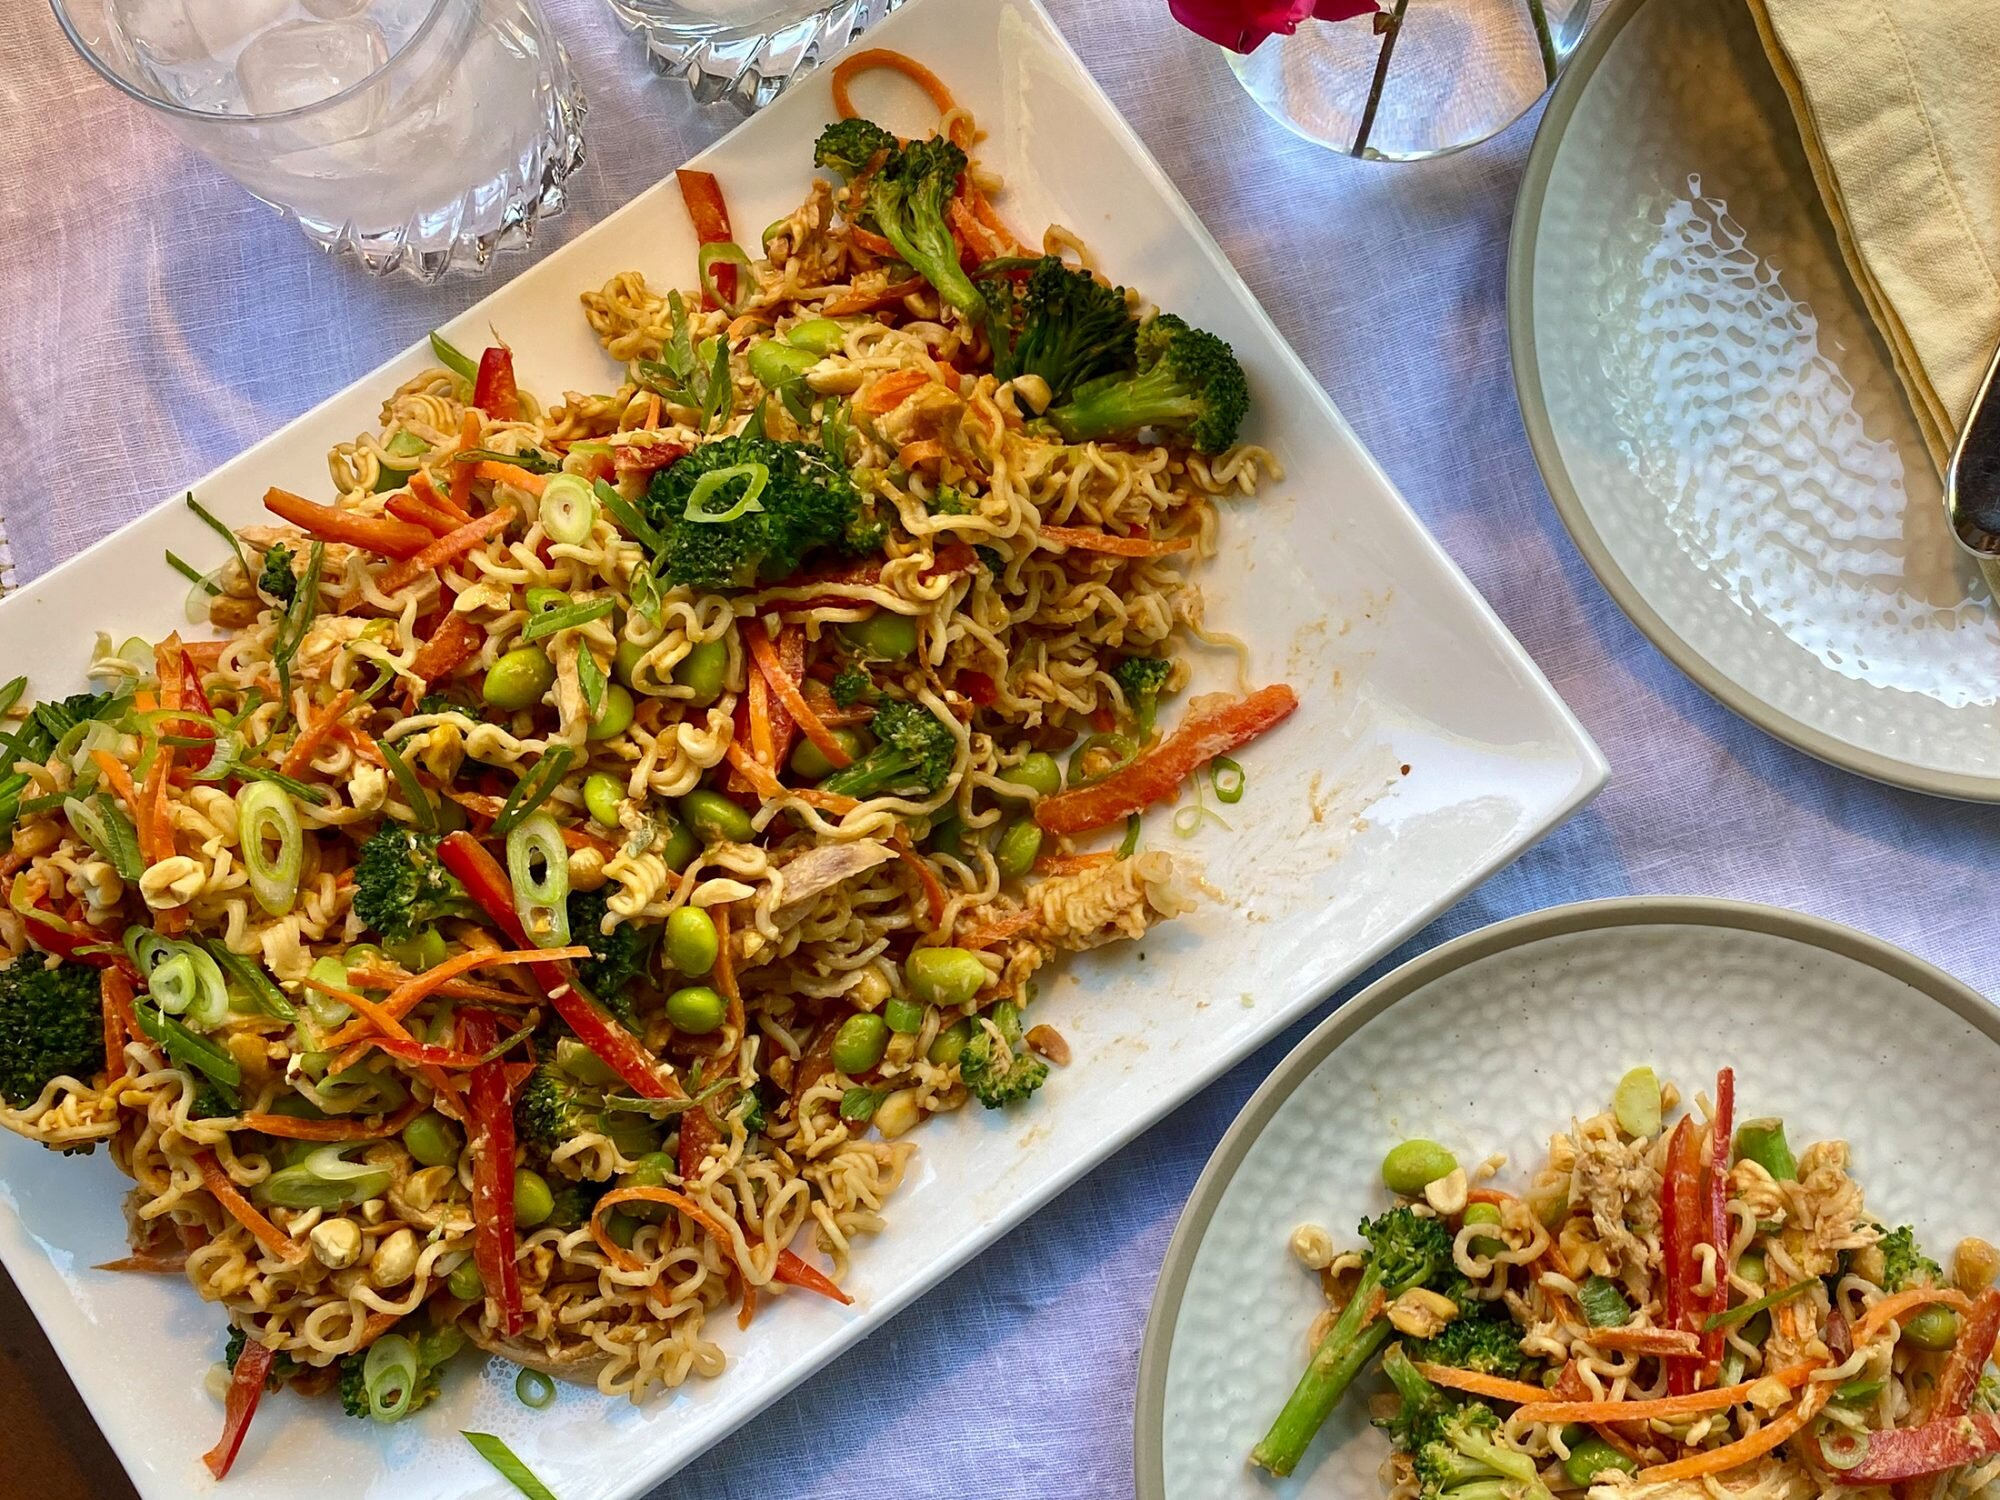 Crunchy Ramen Chicken Salad with Spicy Peanut Dressing